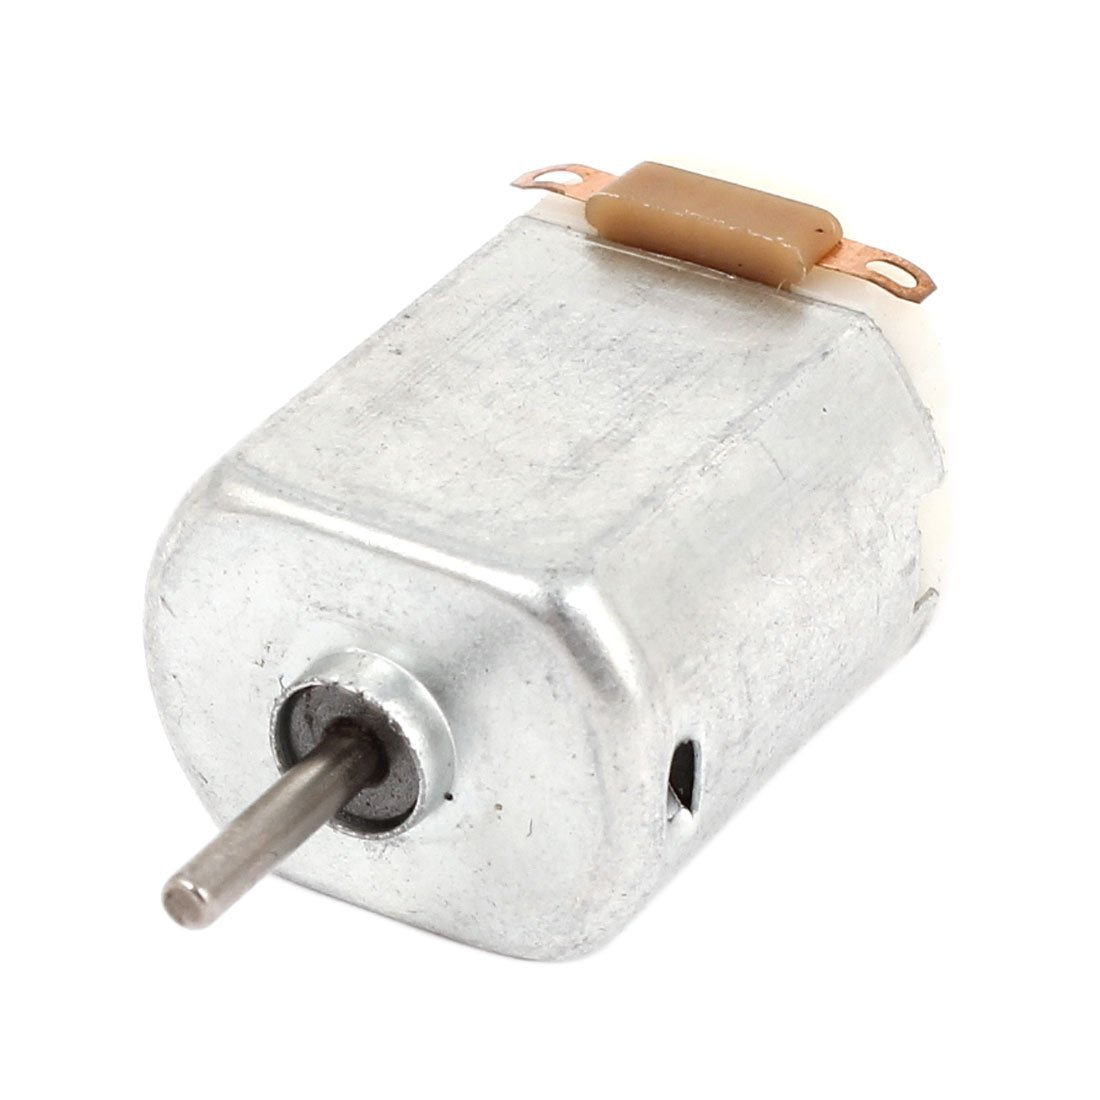 Diy Toy Hobby Quell Summer Thirst Dc 1.5v 3v Mini Electric Motor 18000 Rpm